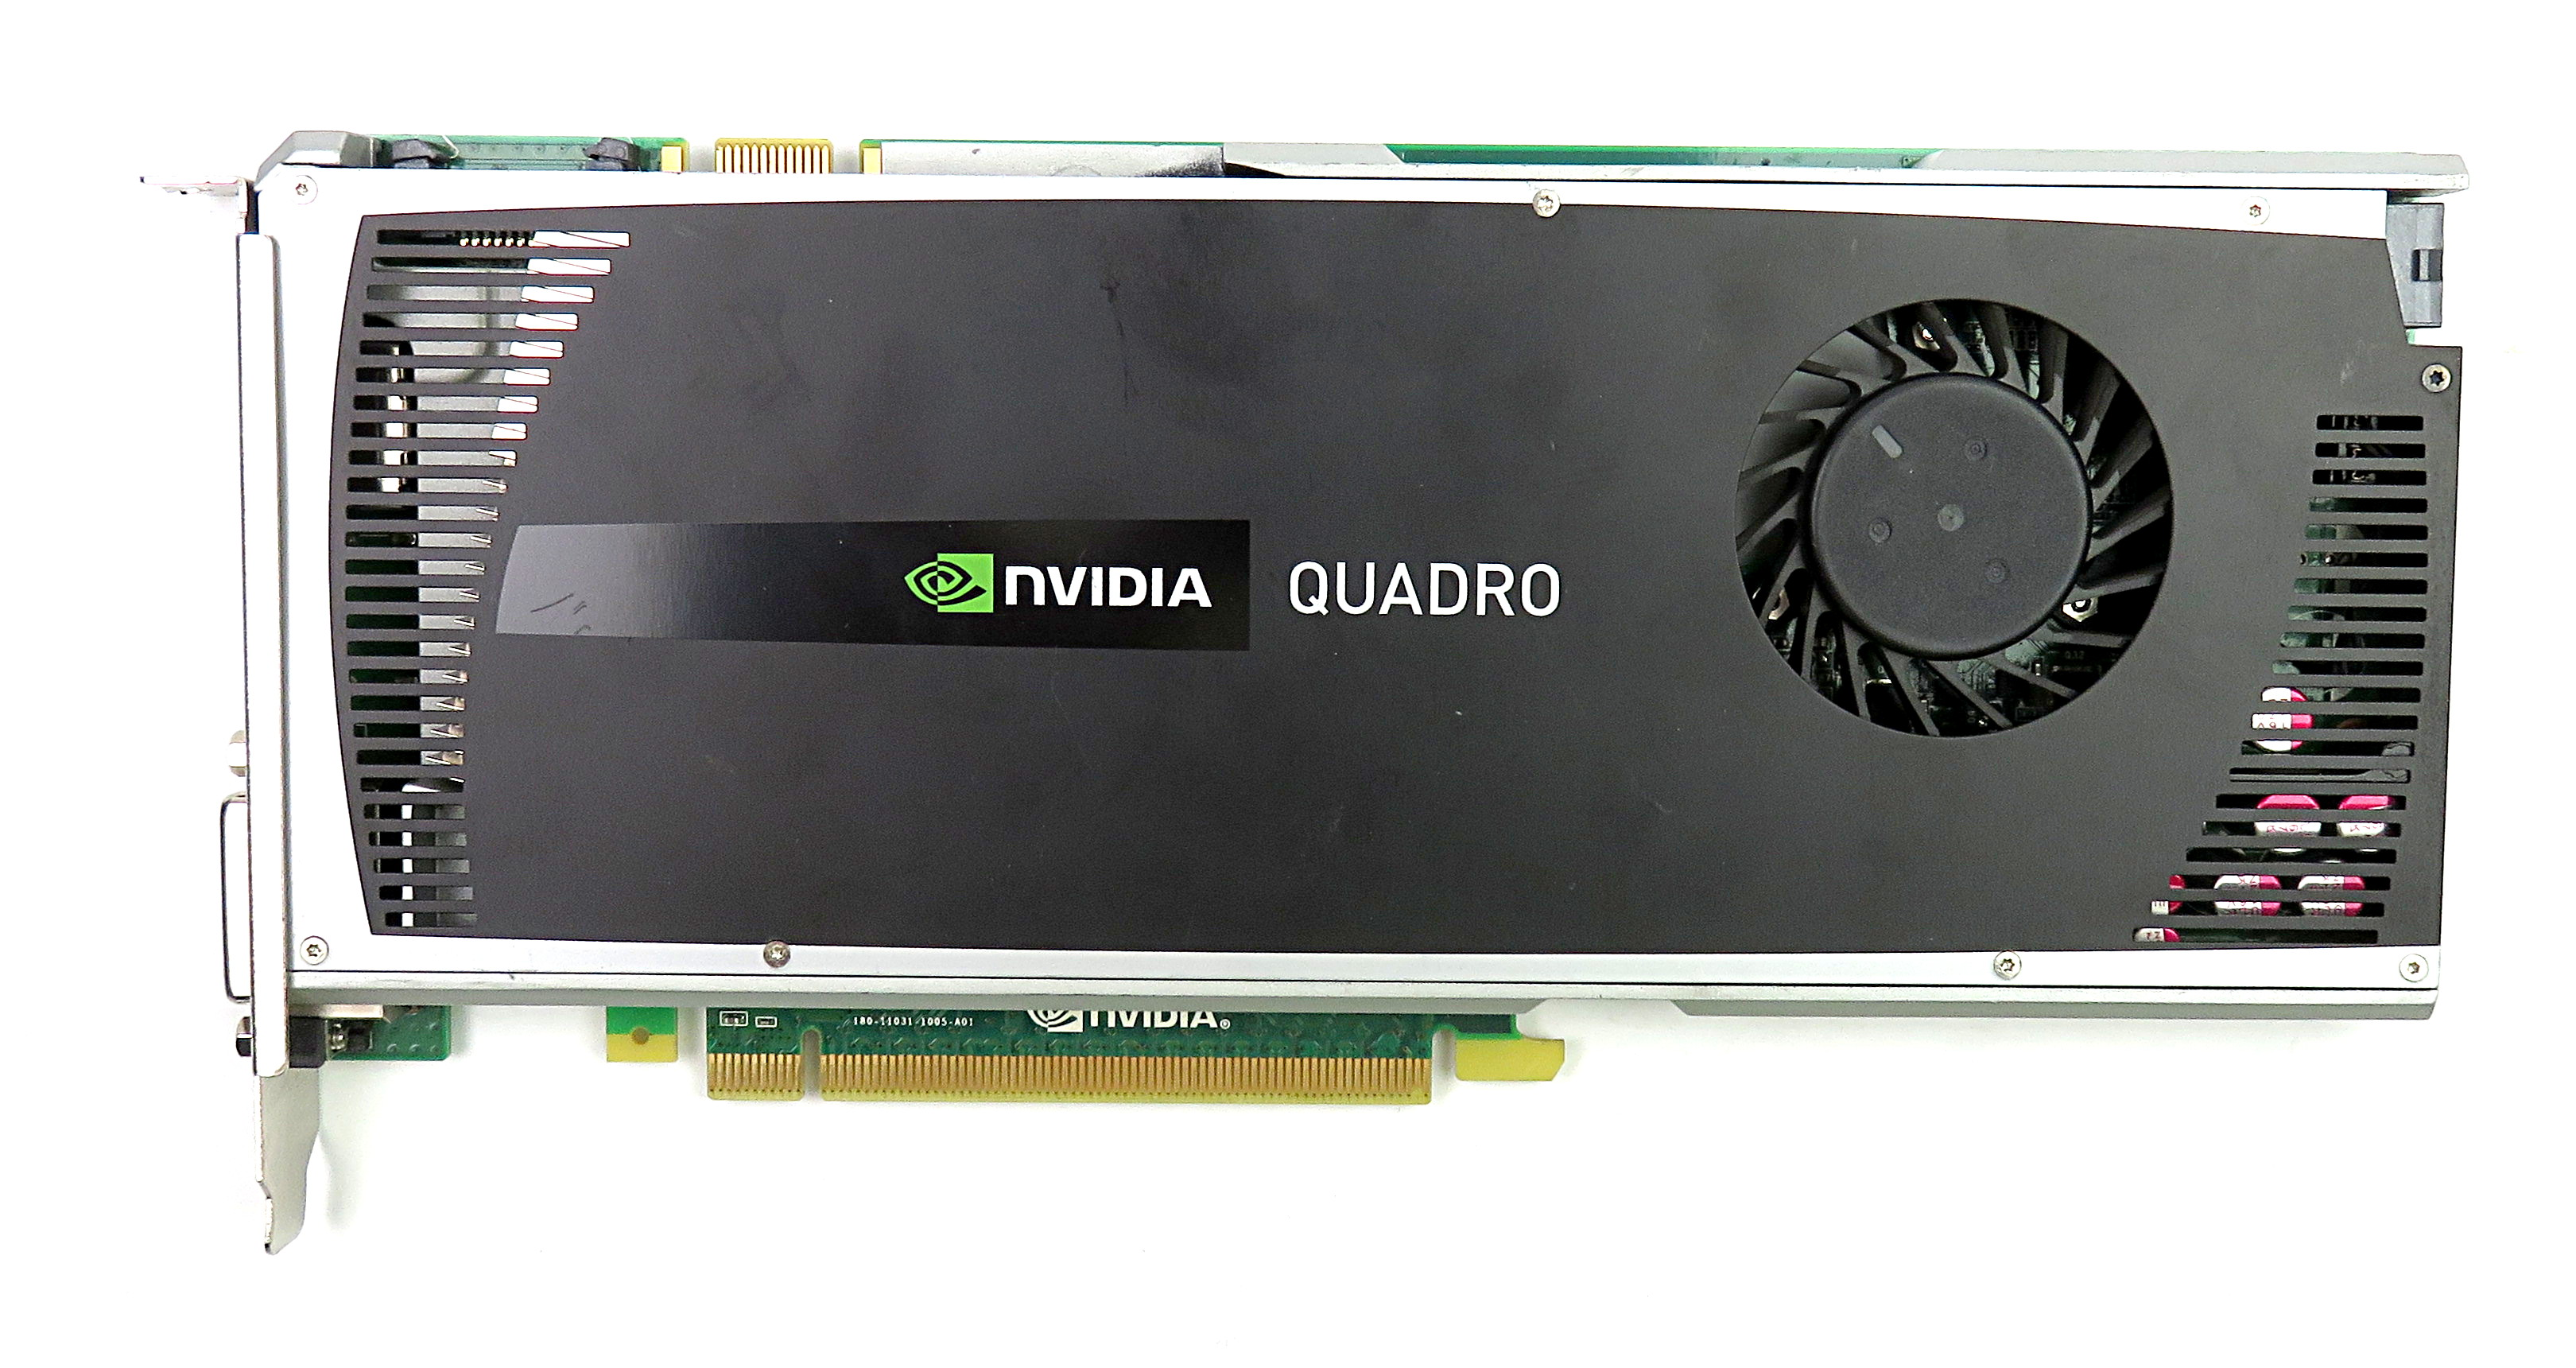 Details about PNY nVidia Quadro 4000 for Mac 2GB GDDR5 Graphics Card  VCQ4000MAC-T DP/DVI/ST